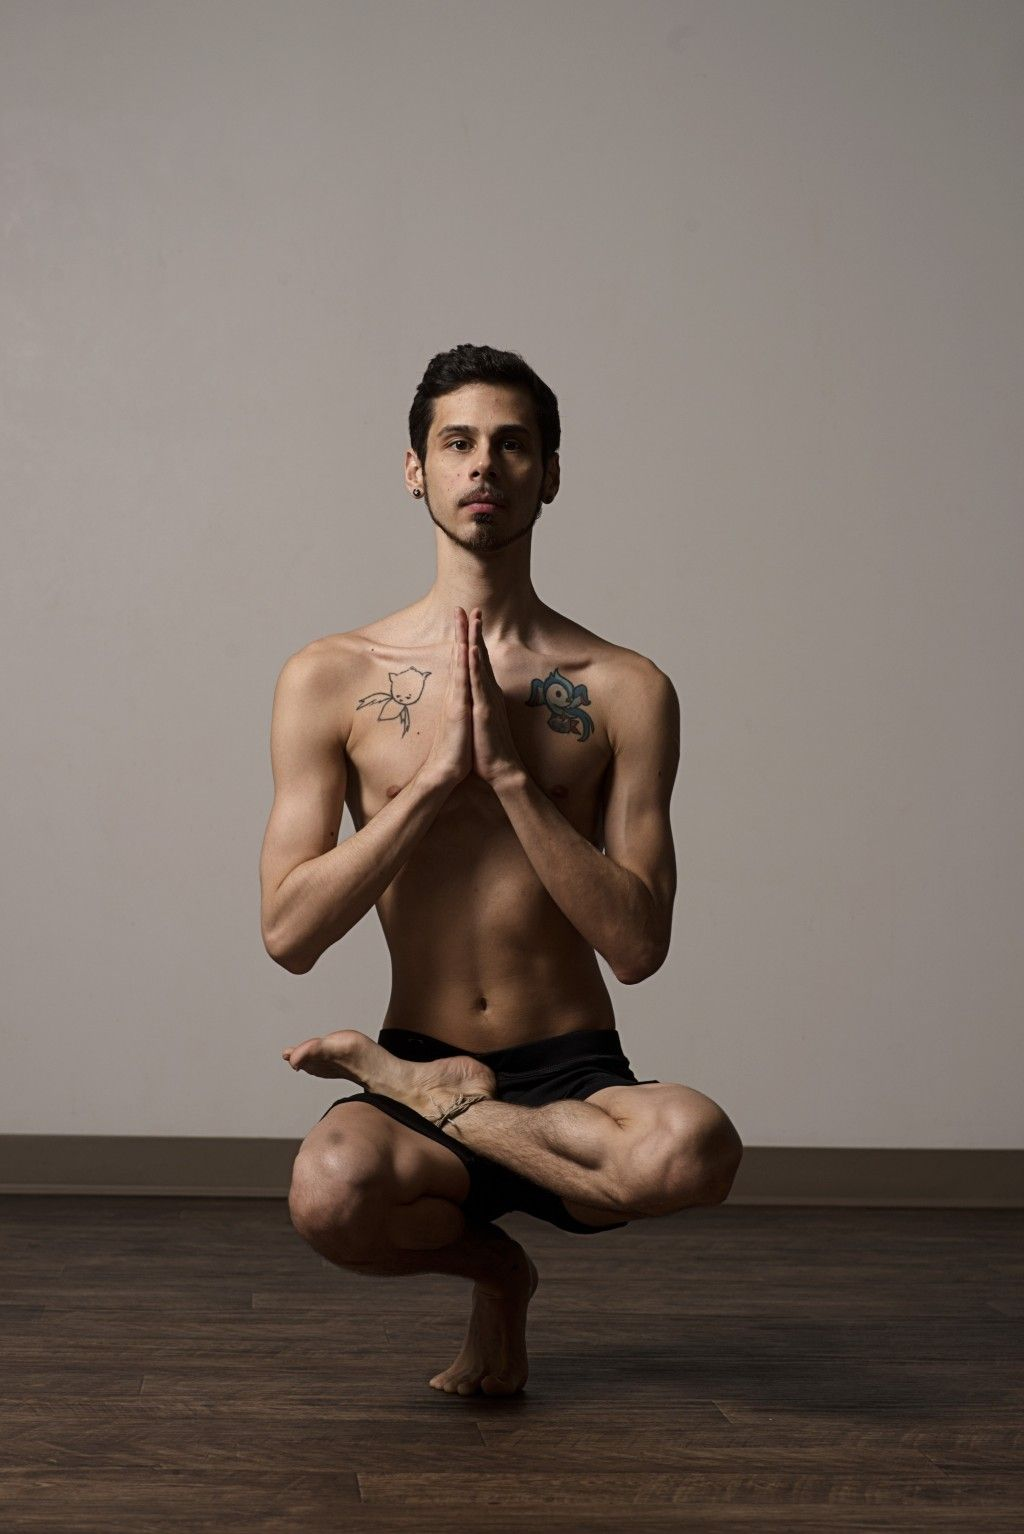 Only 18 Of Yoga Practitioners Are Men Why Is Still Dominated By Women Despite The Medical Benefits To Both Sexes